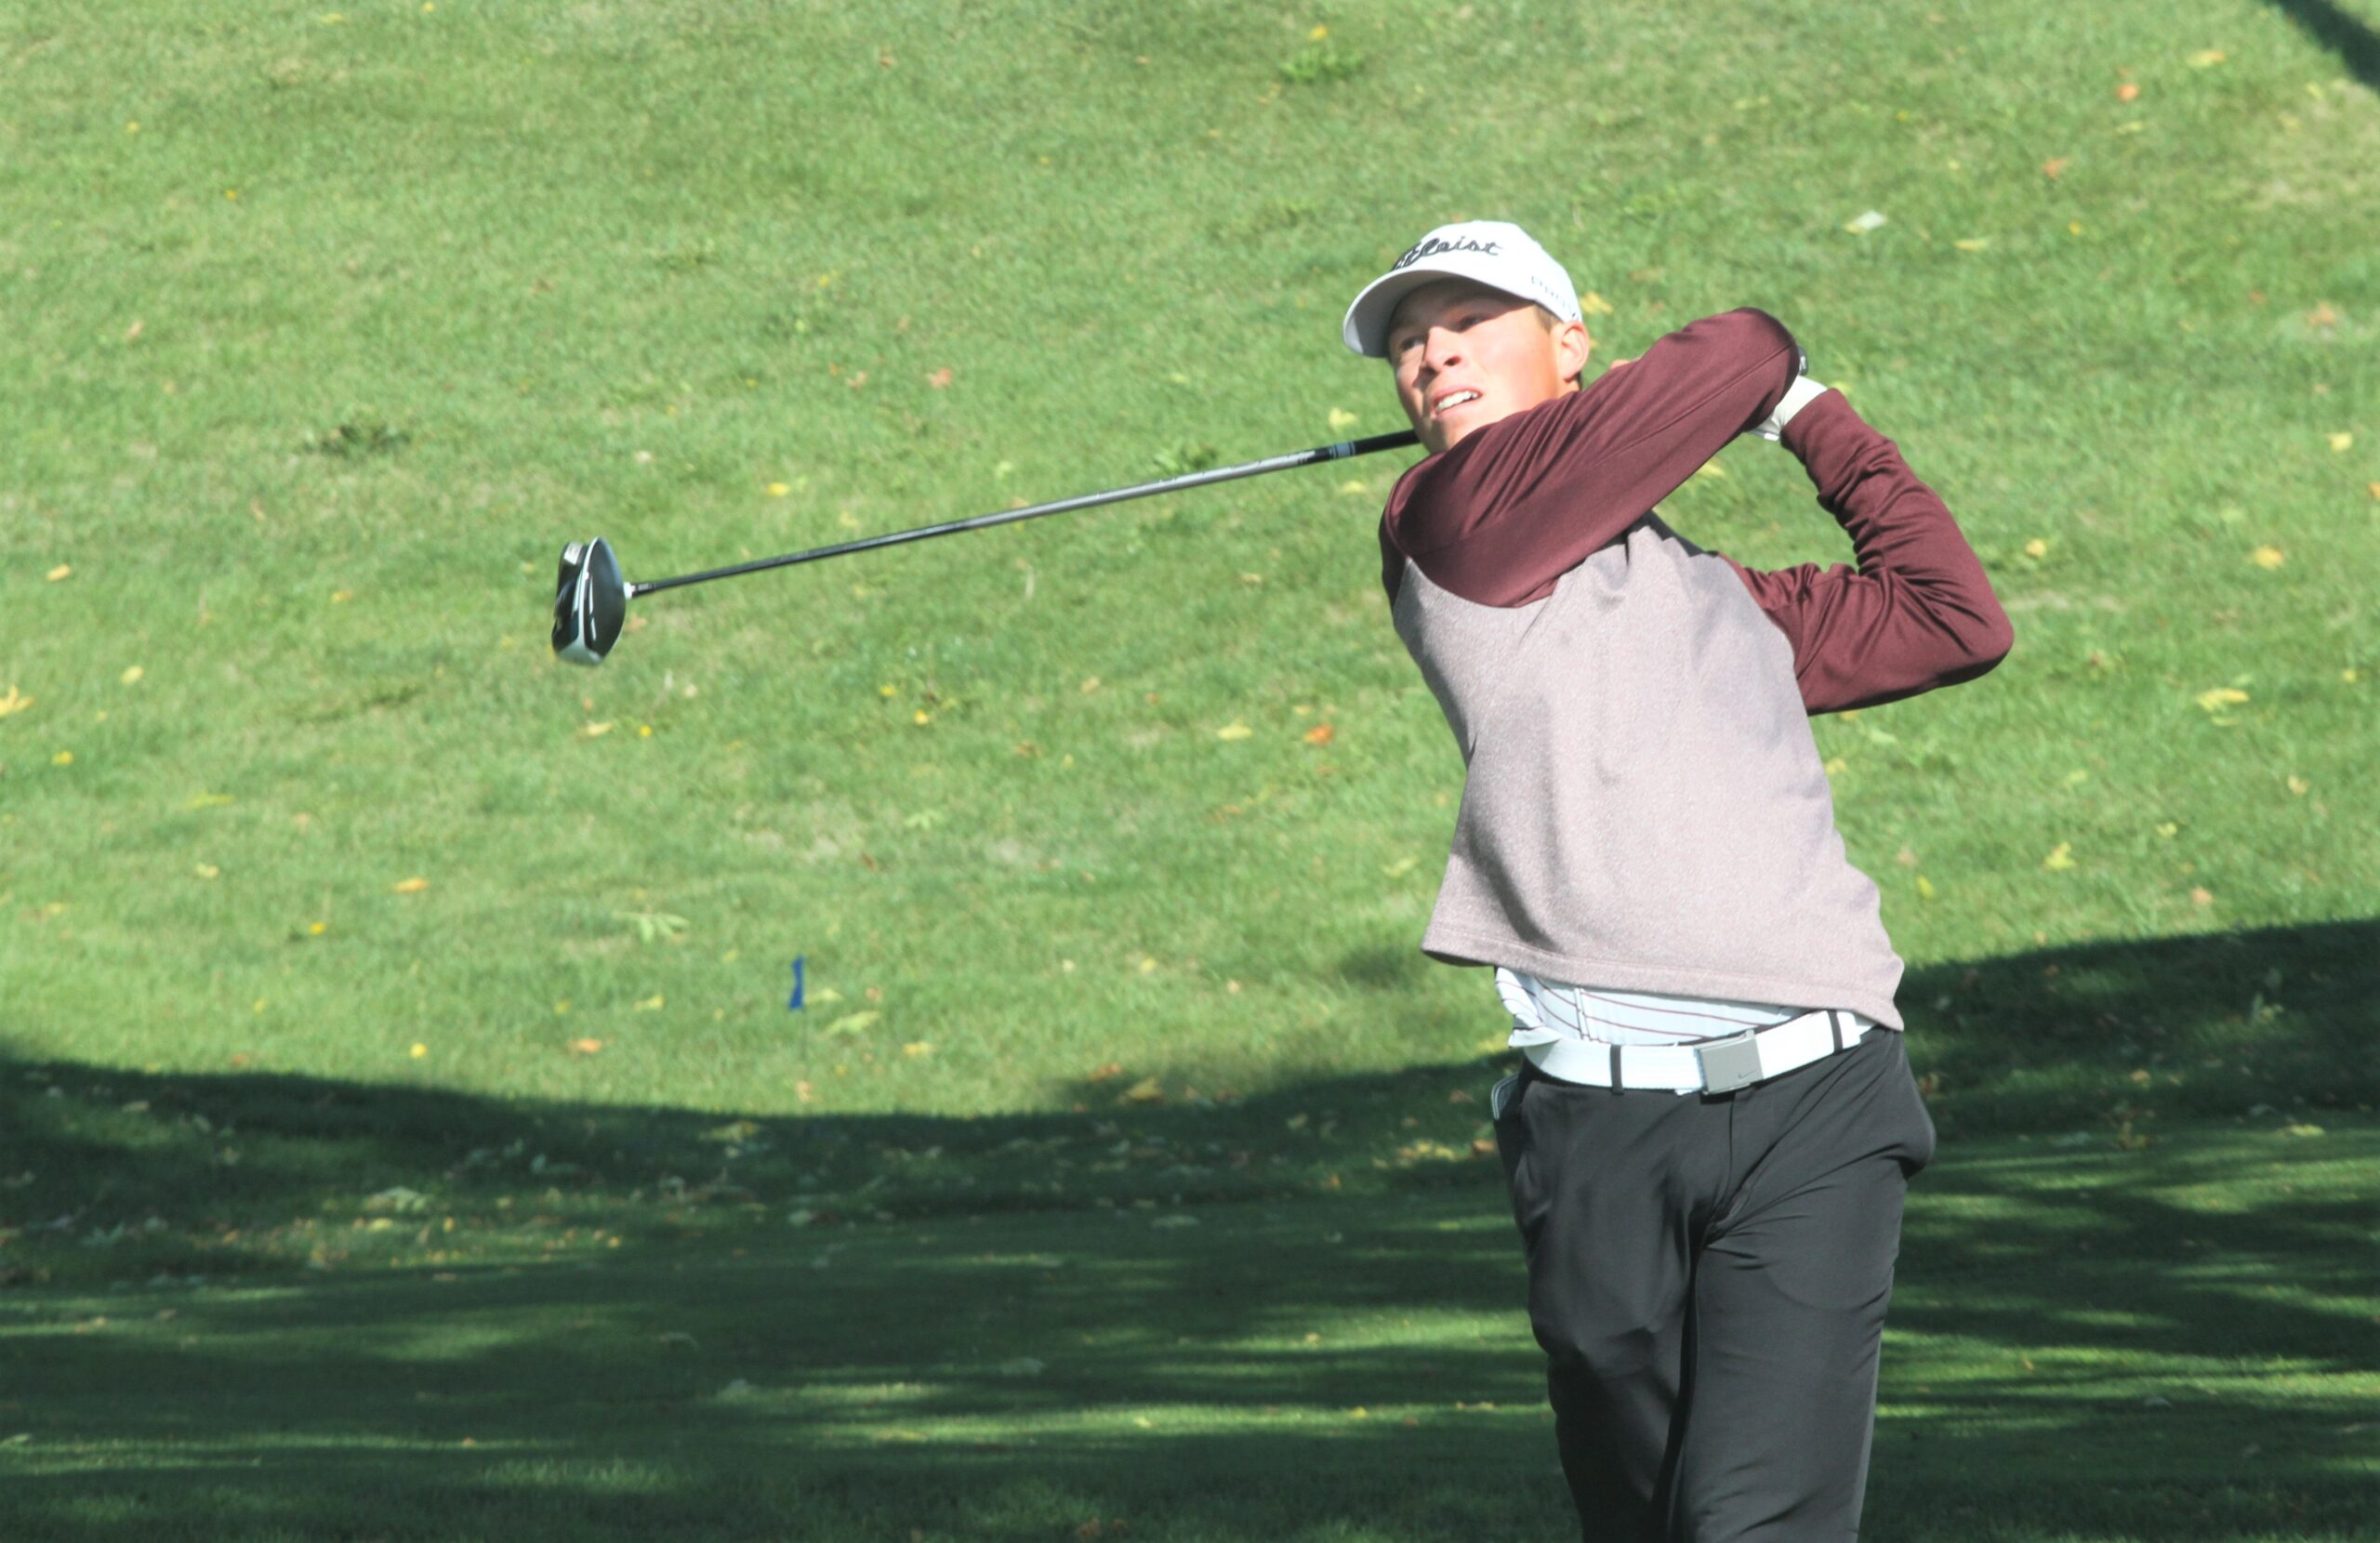 Johnson named player of the year by Iowa Golf Coaches Association